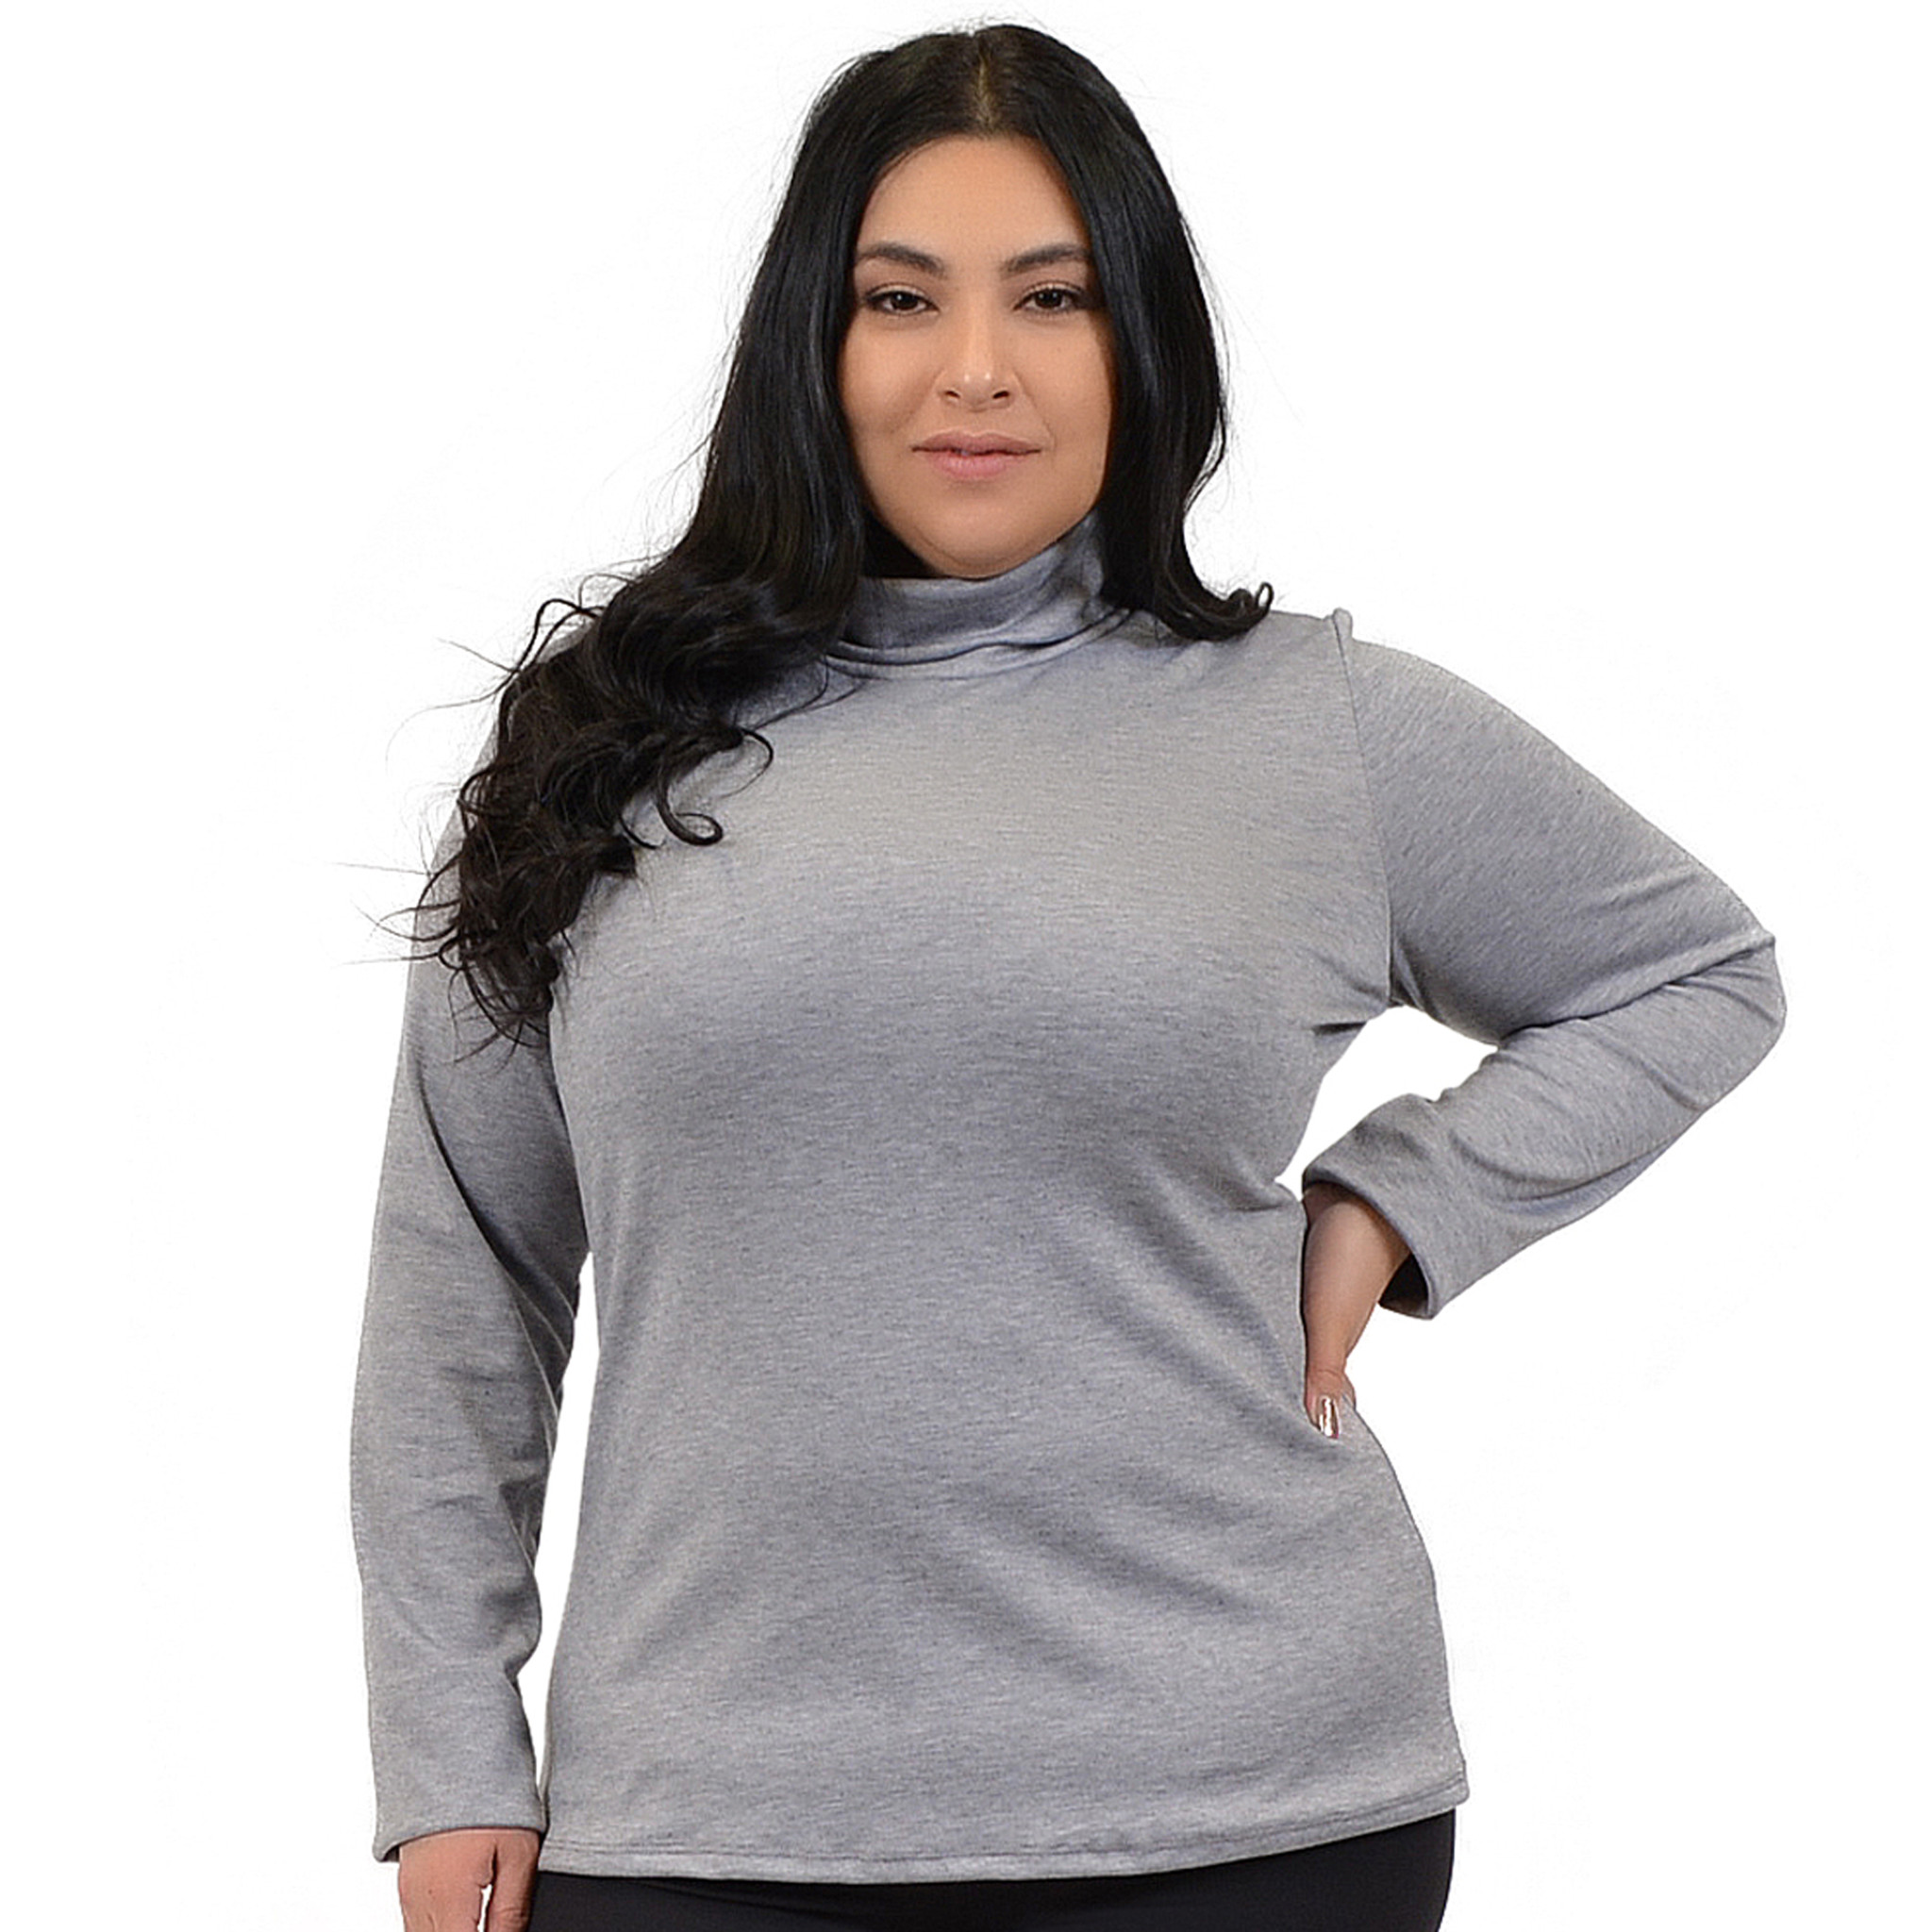 880ef158a4621 Stretch Is Comfort - Plus Size Warm Long Sleeve Turtleneck Top - XXX-Large ( 20)   Charcoal Gray - Walmart.com